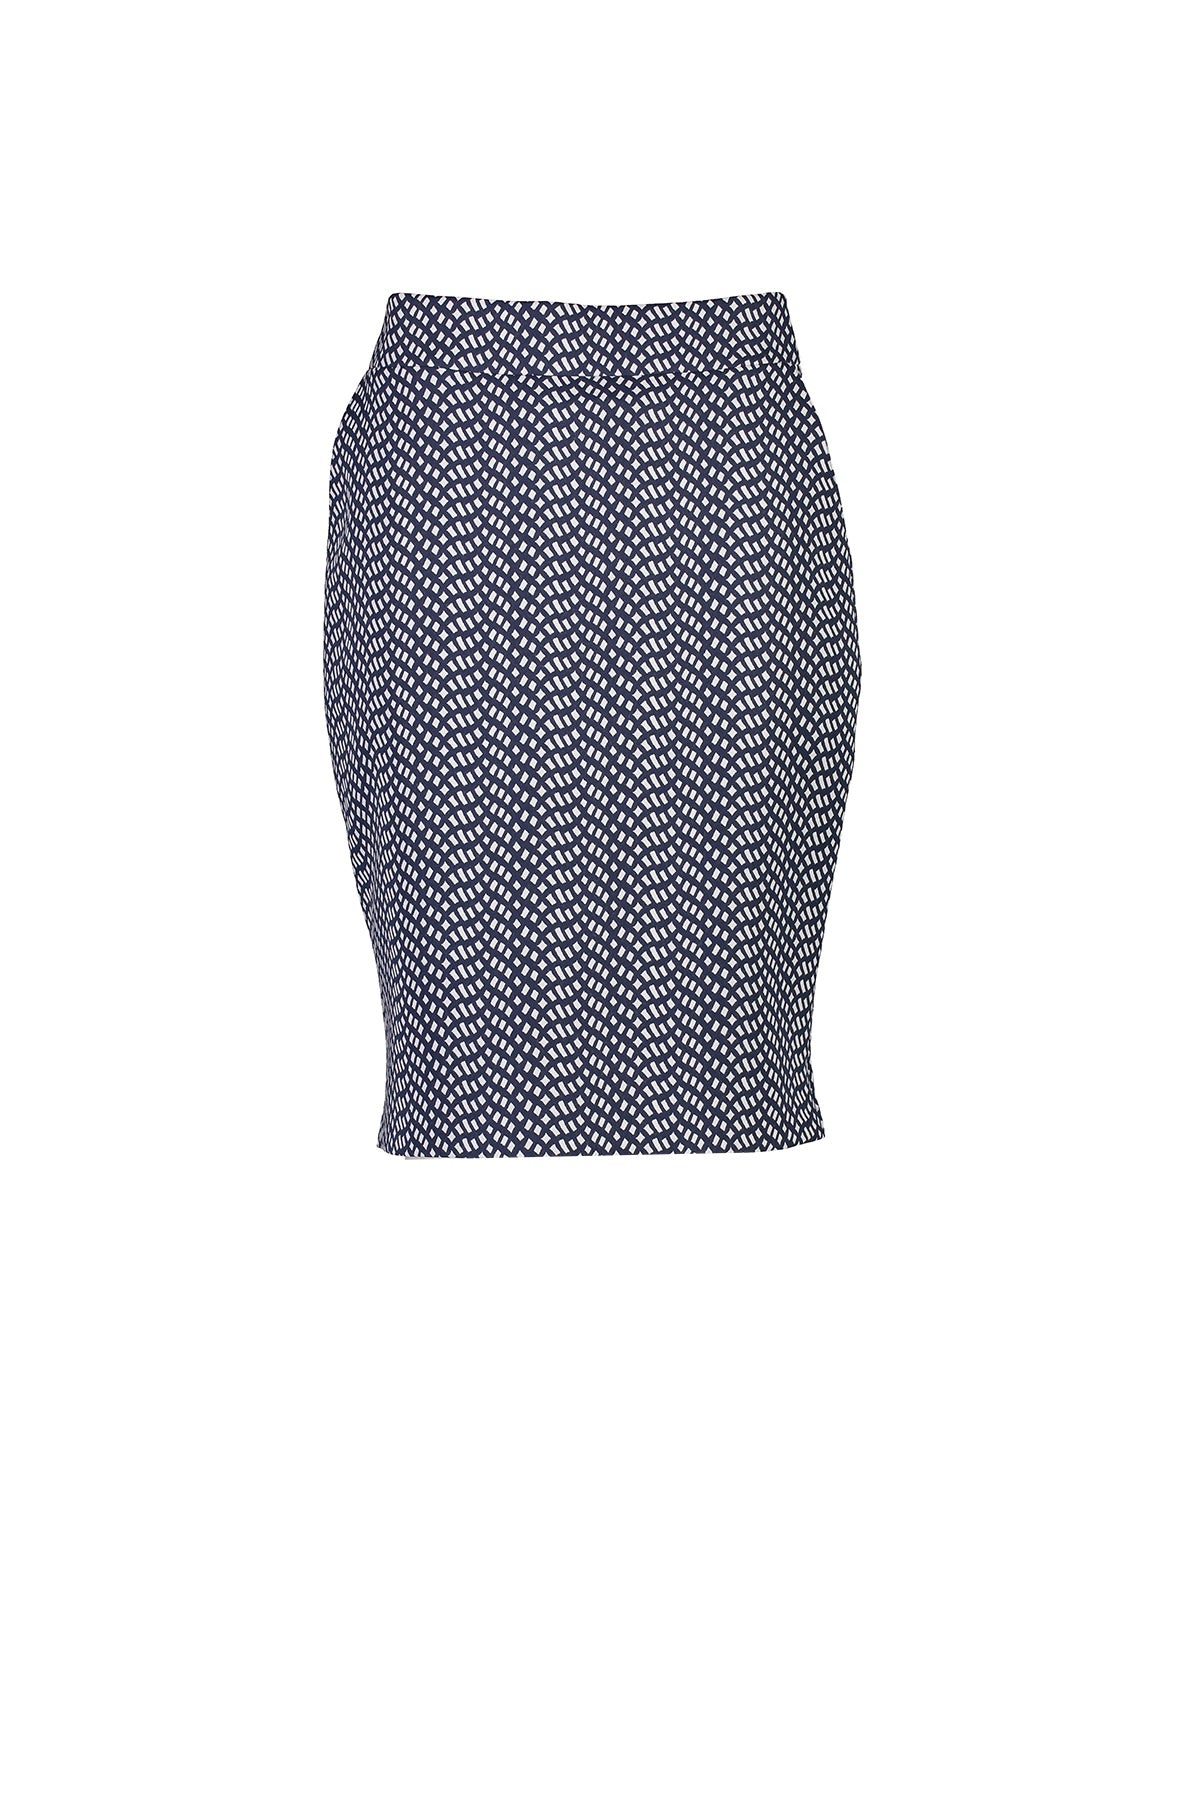 WORLD 4518 Two Wrongs Skirt Navy White Mosaic